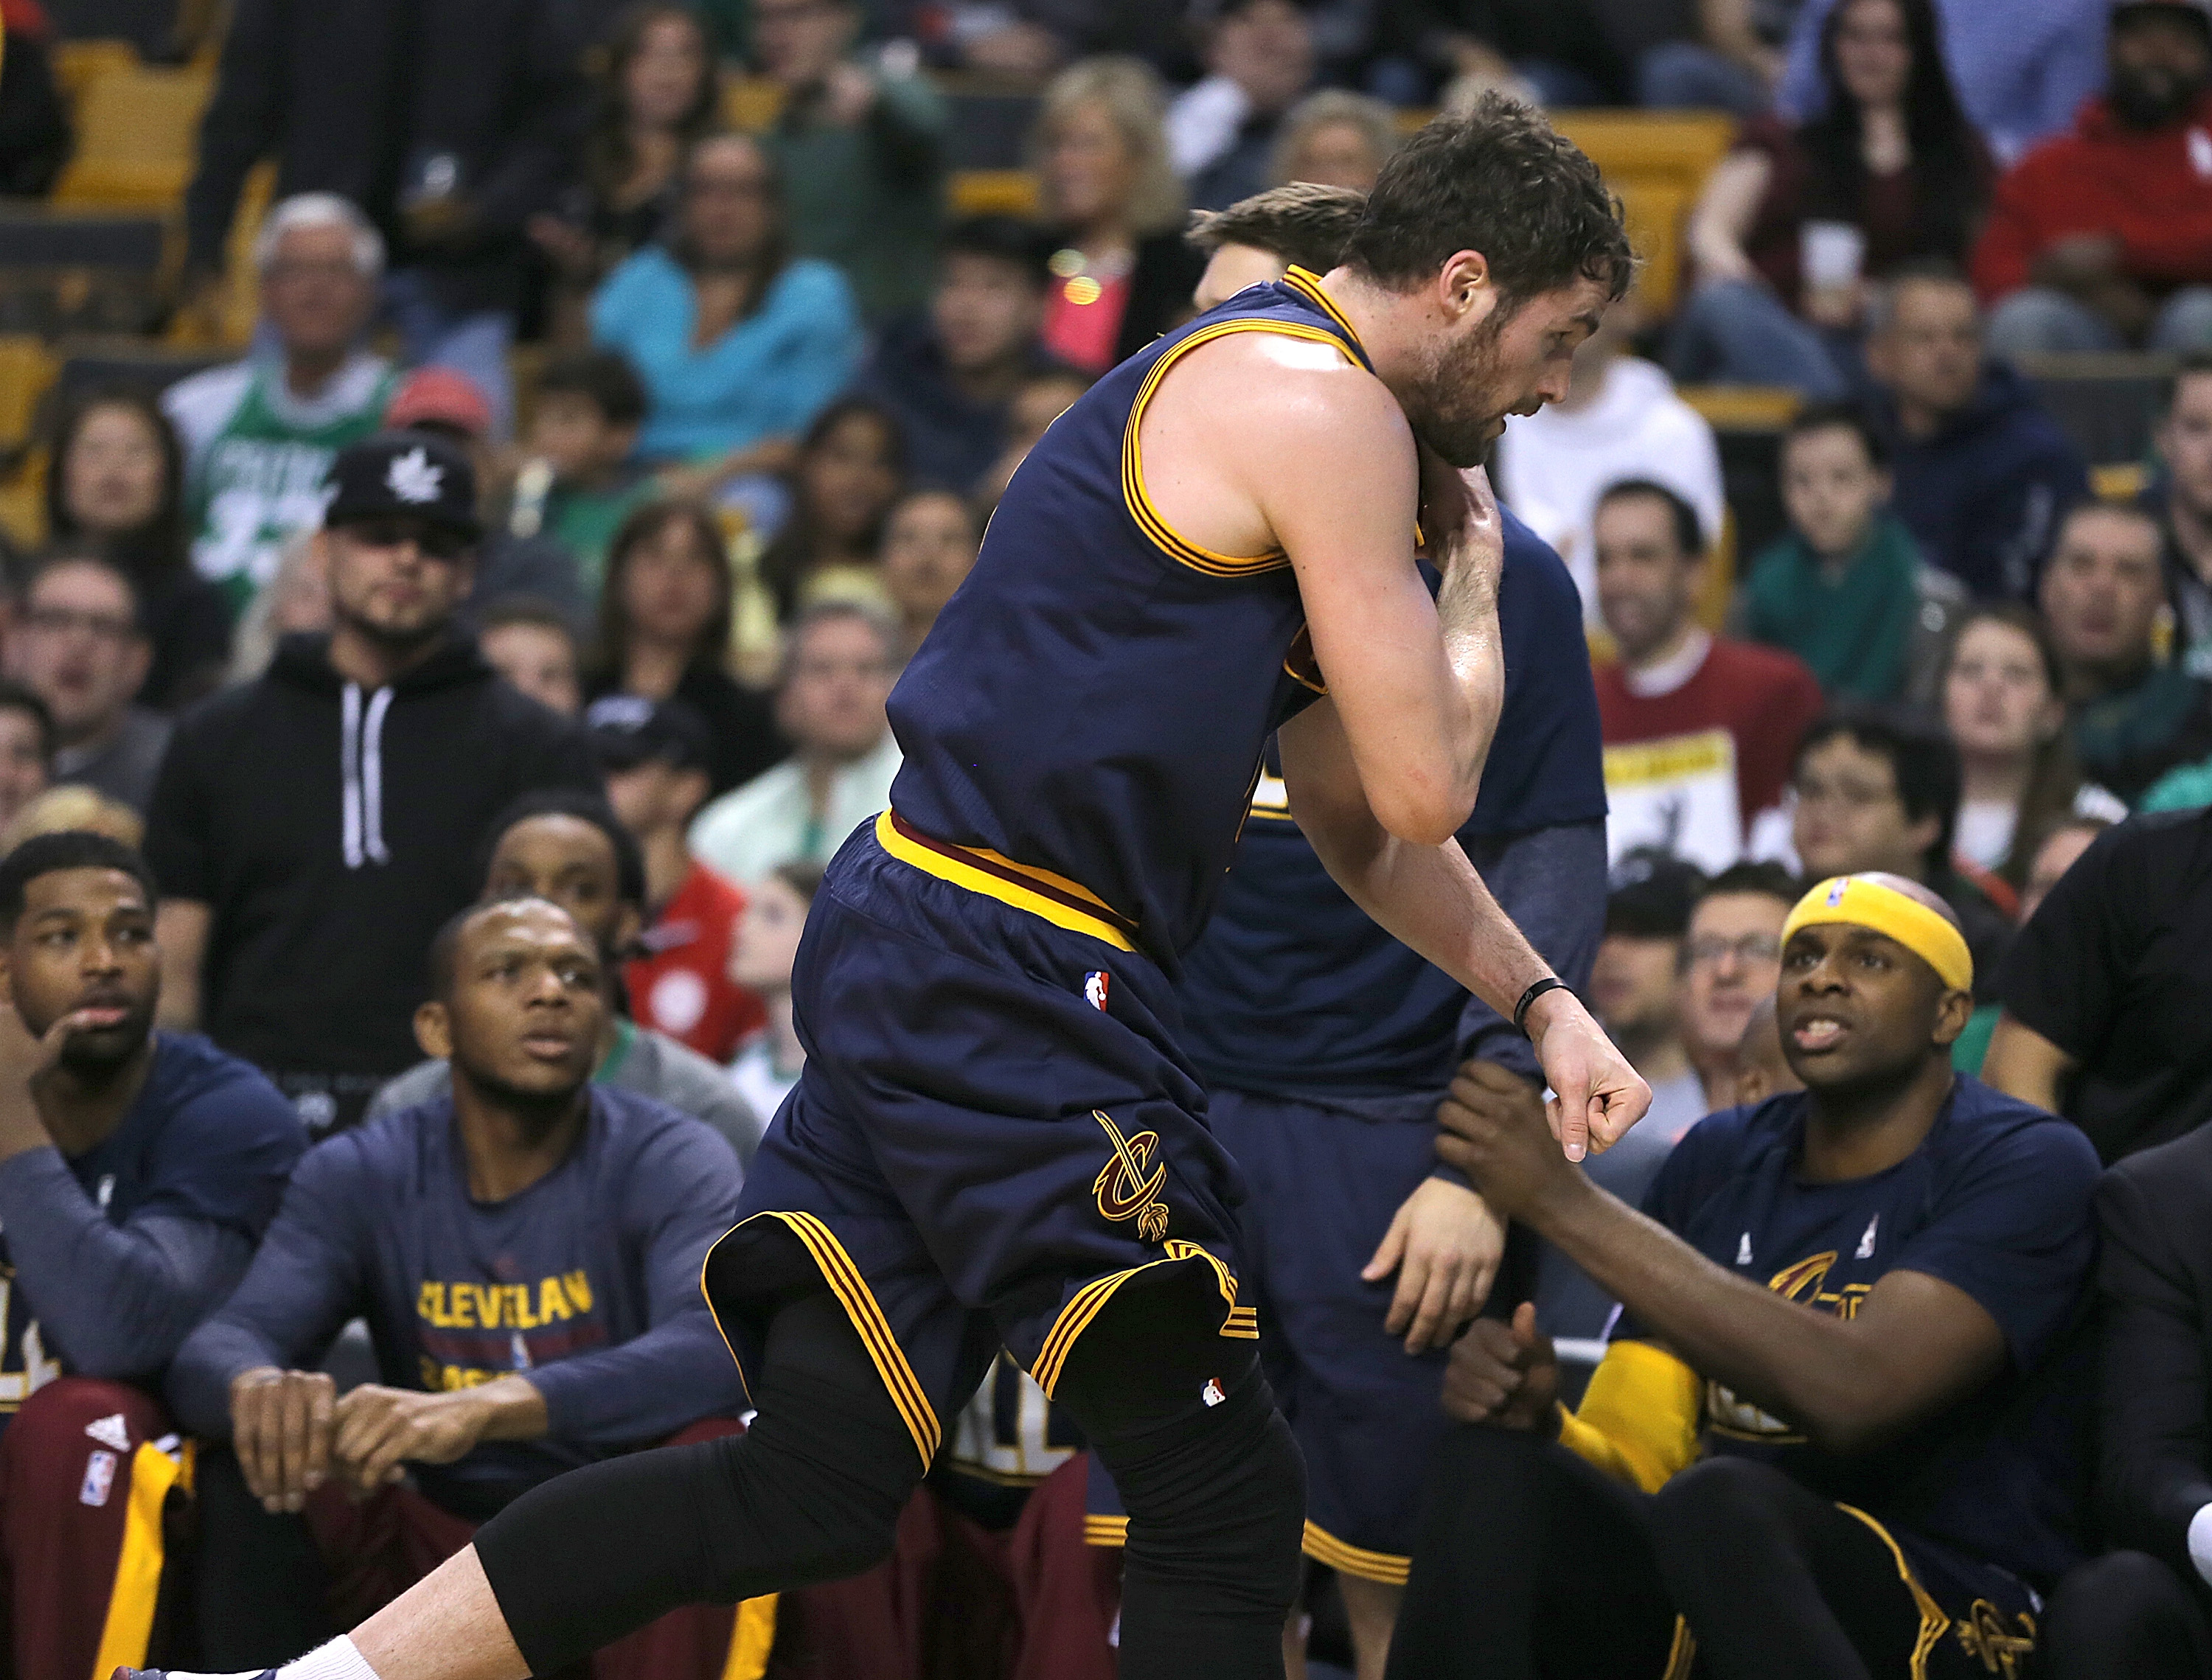 BOSTON, MA - APRIL 26: Kevin Love #0 of the Cleveland Cavaliers runs by teammates off of the court after an injury against the Boston Celtics in the first quarter in Game Four during the first round of the 2015 NBA Playoffs on April 26, 2015 at TD Garden